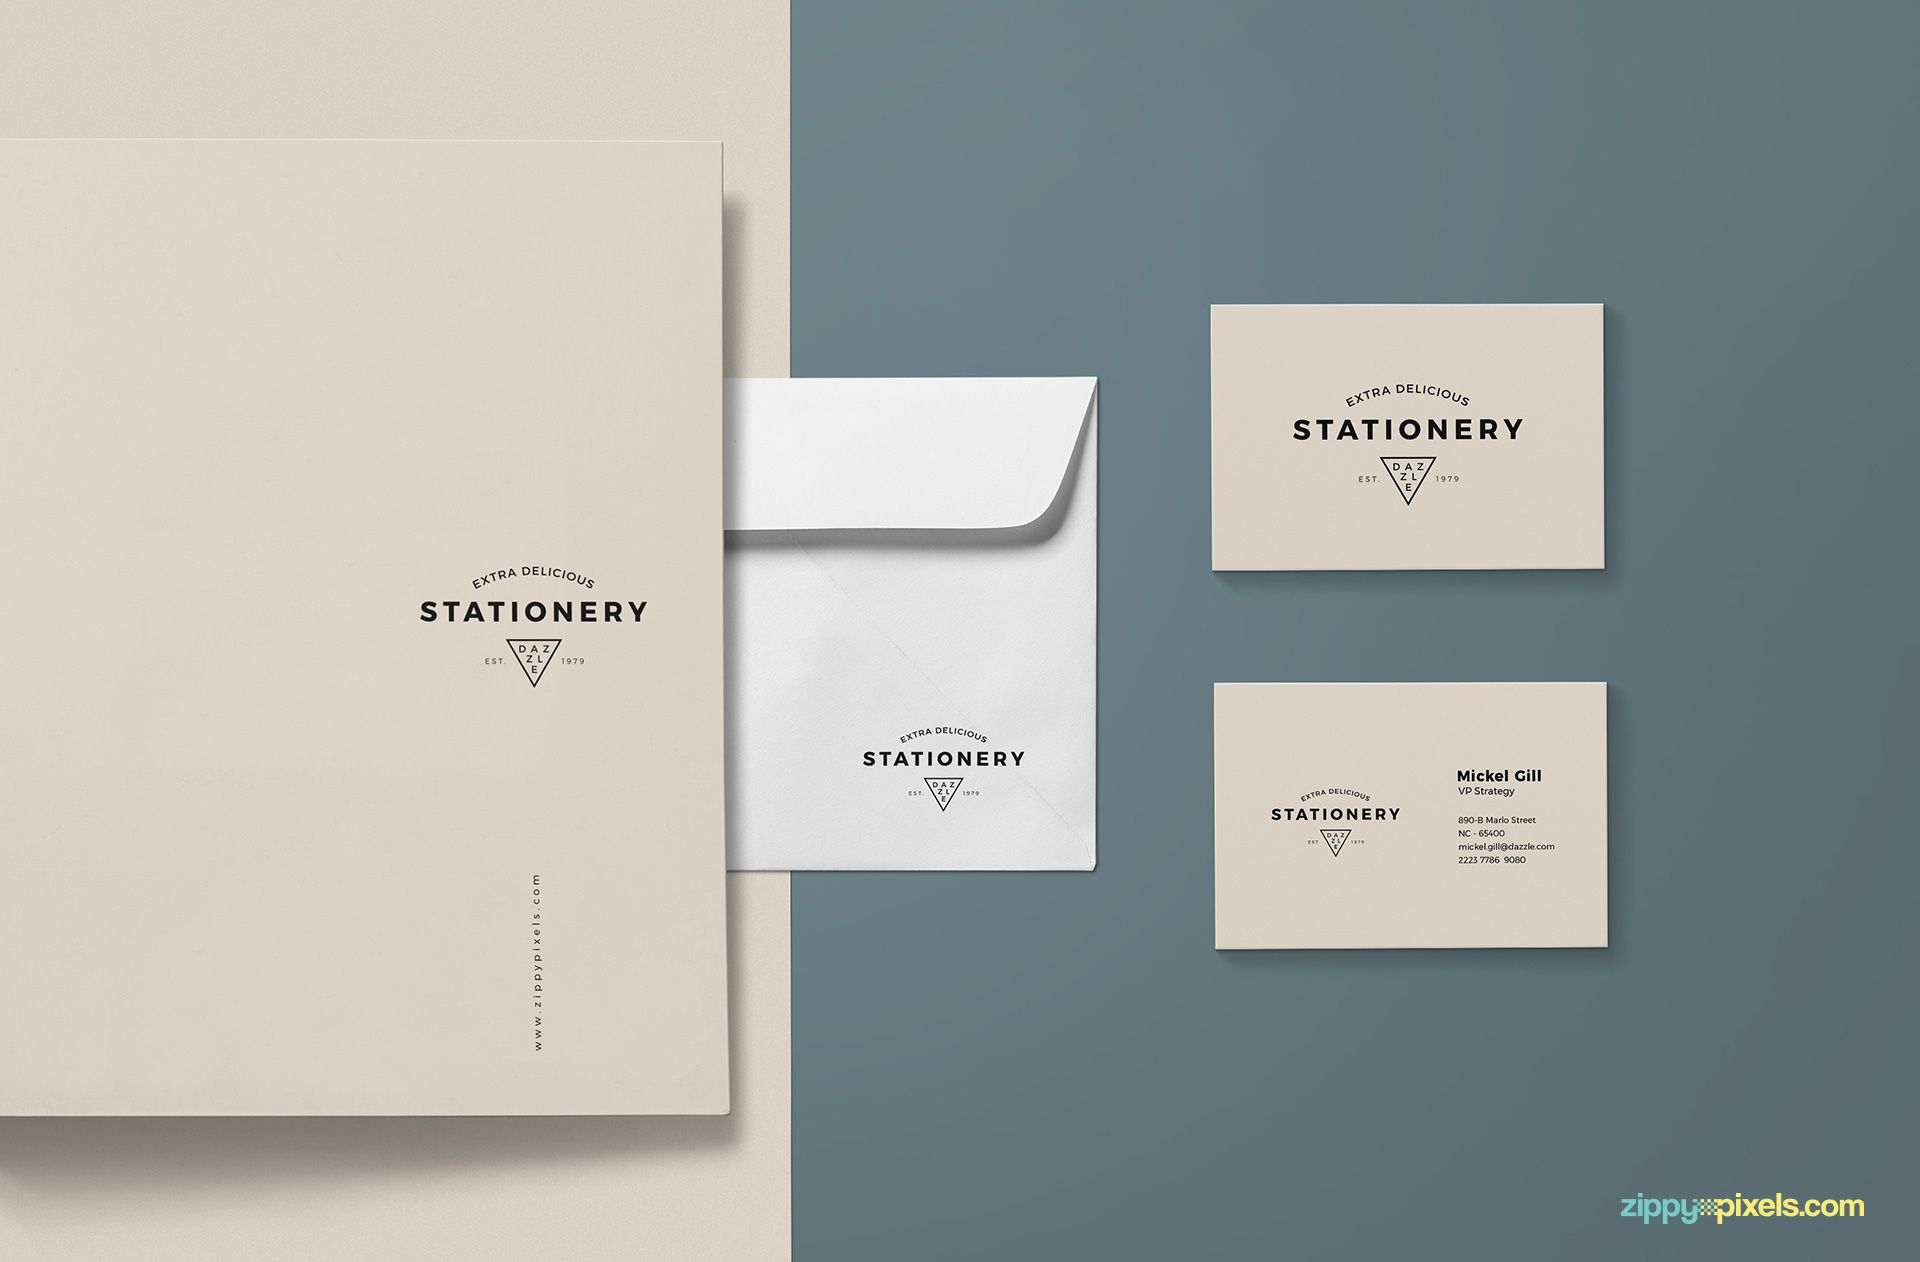 Gorgeous stationery design mockup.